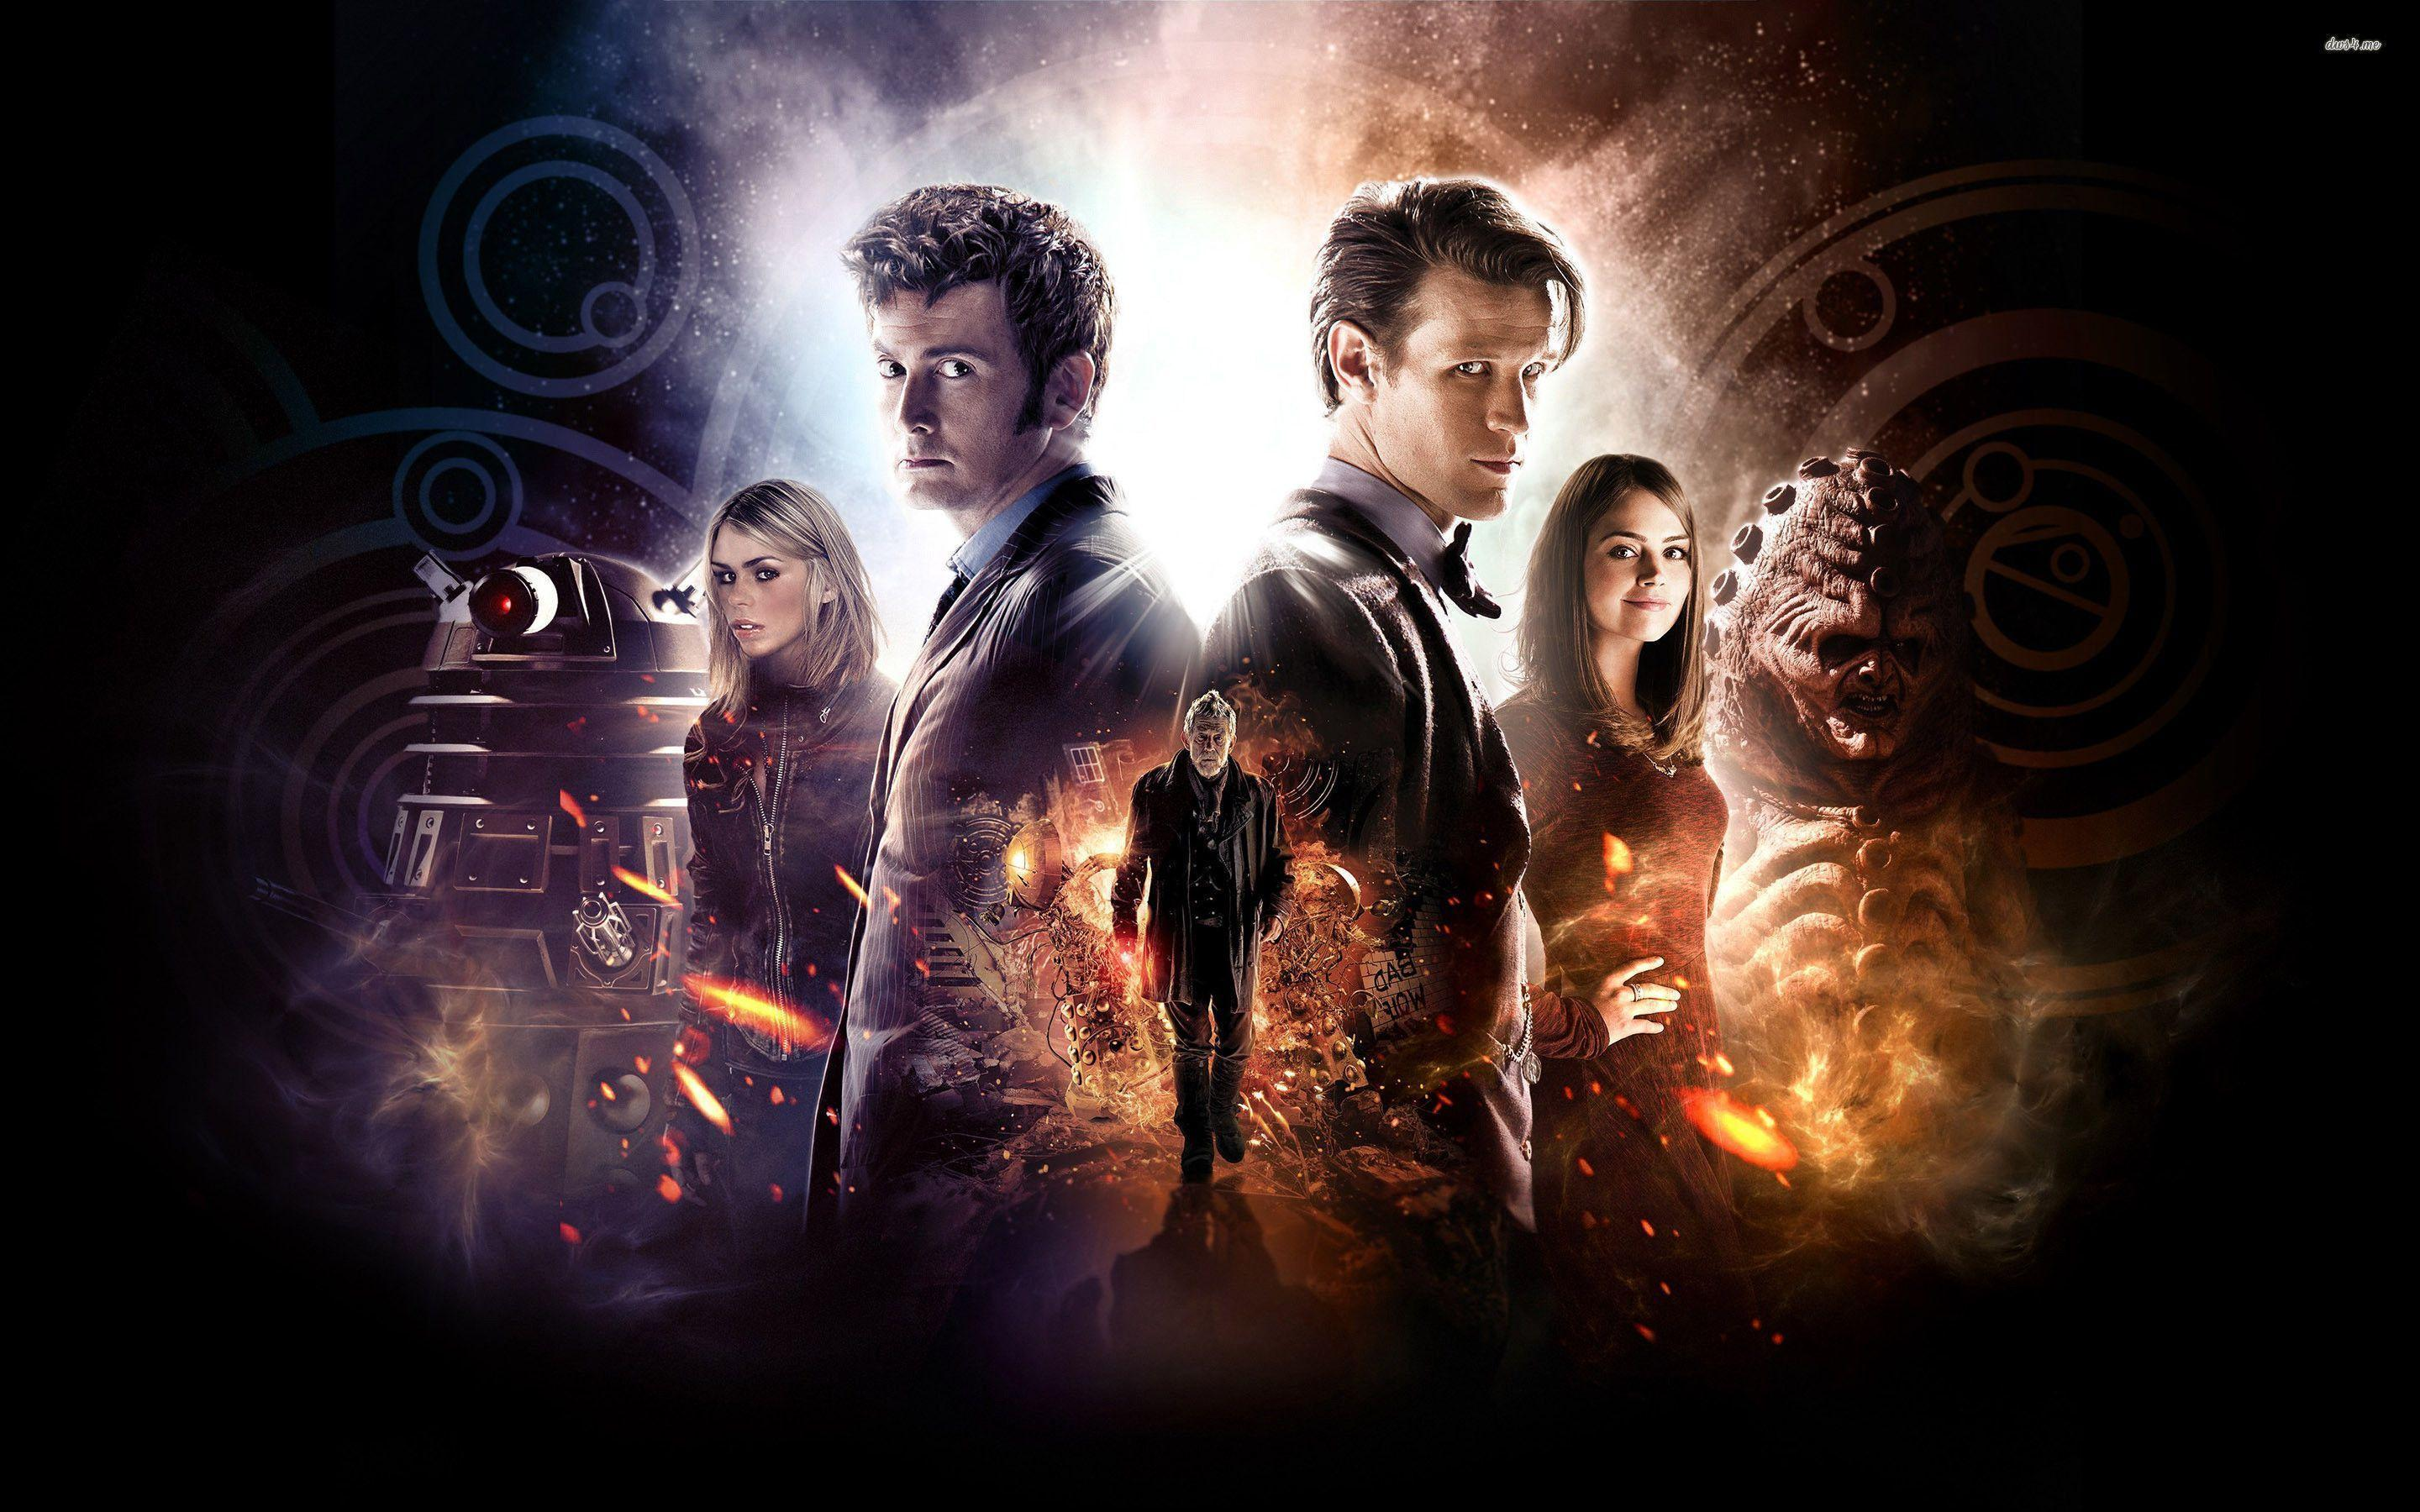 Doctor Who Hd Wallpapers Top Free Doctor Who Hd Backgrounds Wallpaperaccess